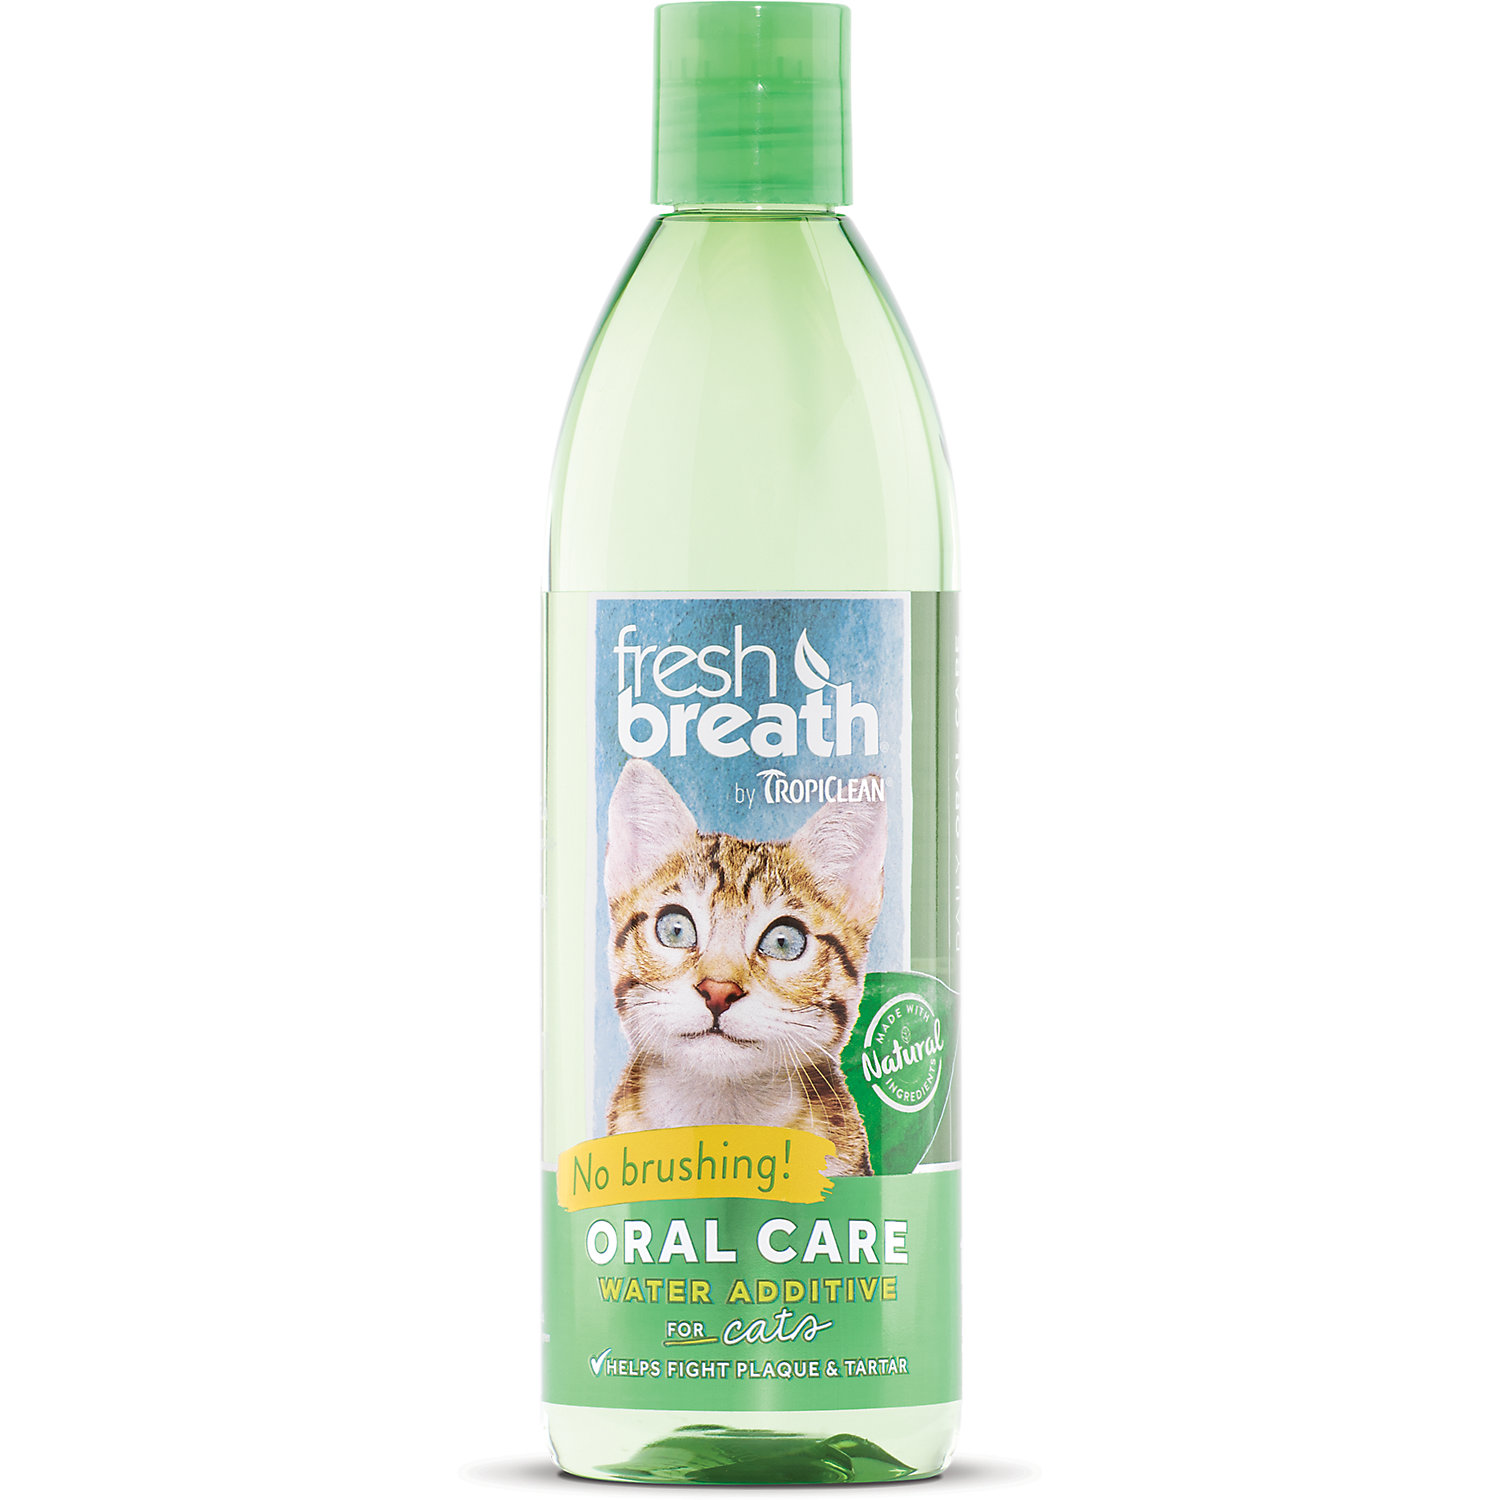 Tropiclean Fresh Breath Oral Care Water Additive For Cats 16 Oz.